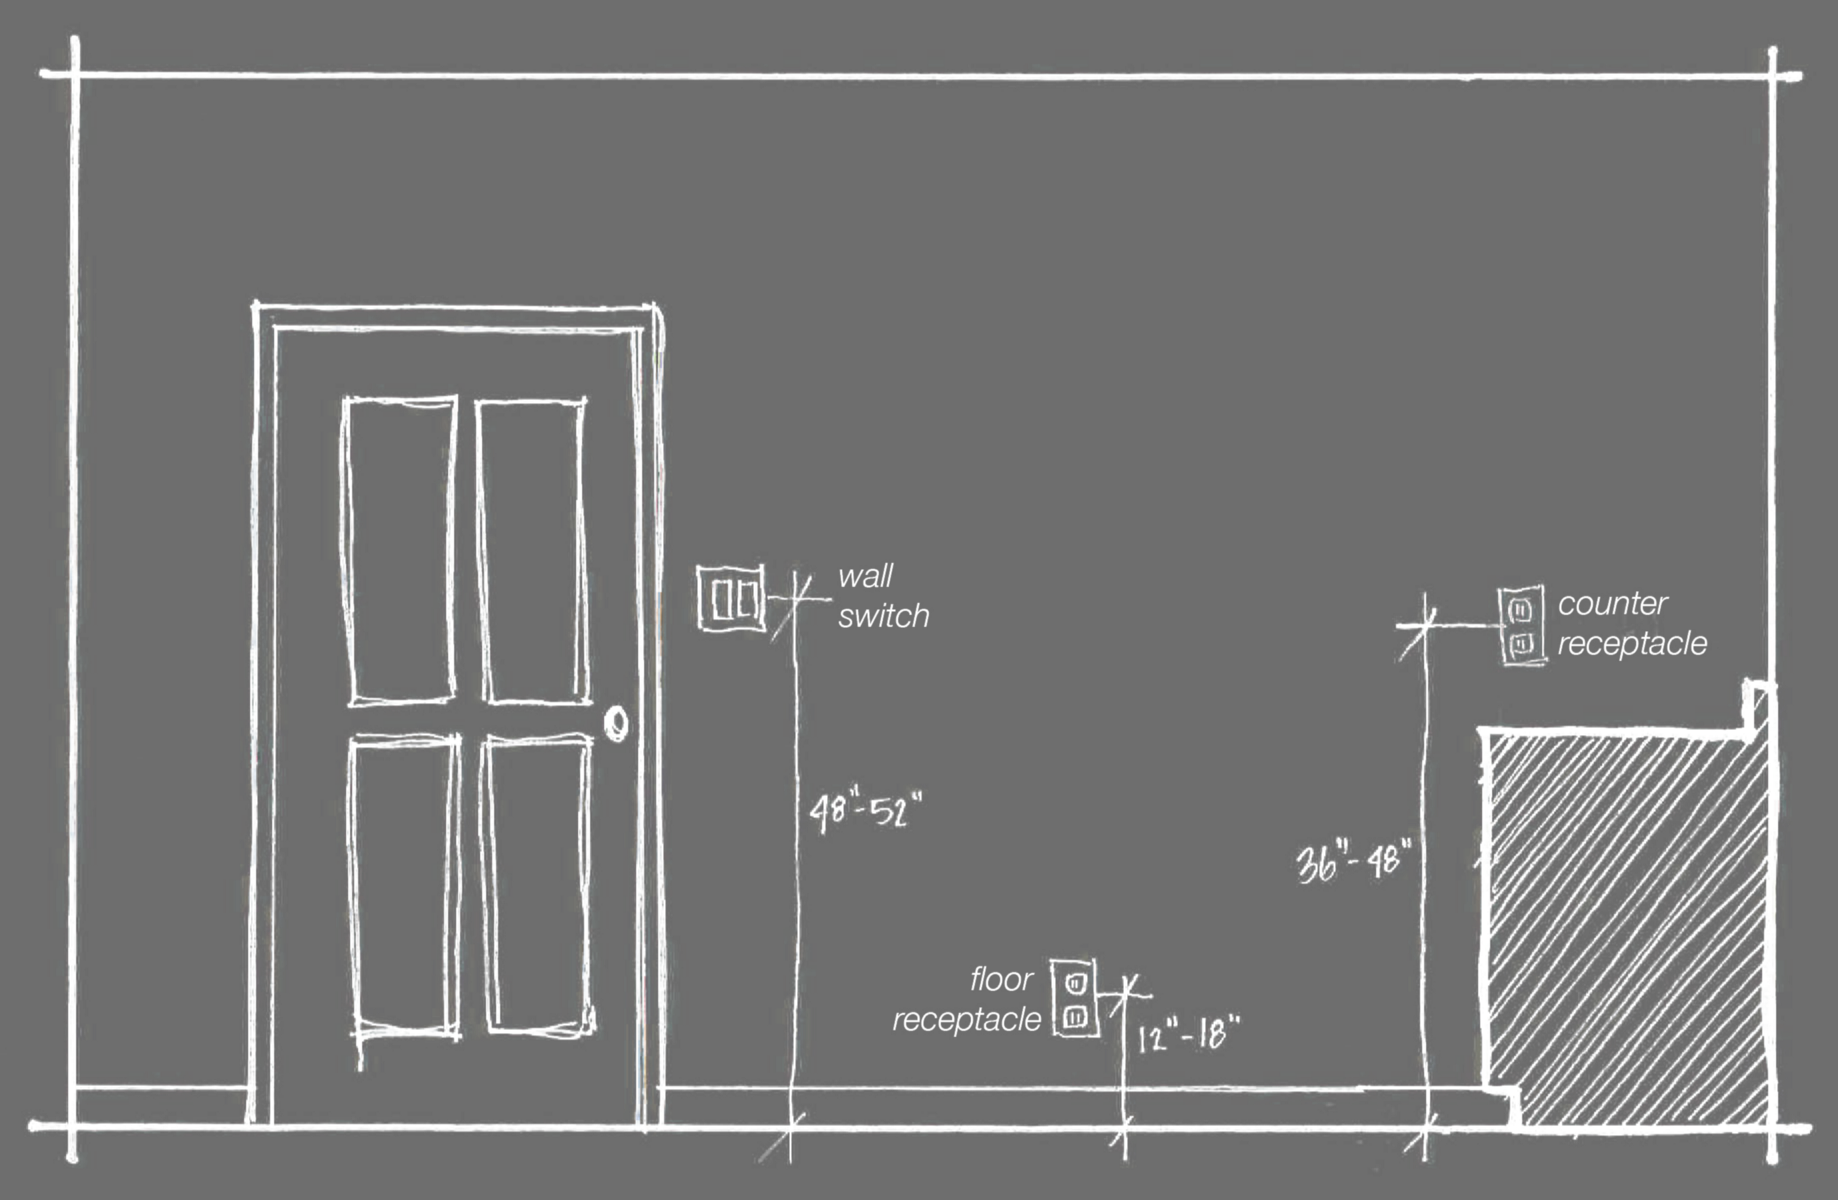 What is the required minimum height AFF of a electrical wall outlet Nec Gfci Wiring Diagram on